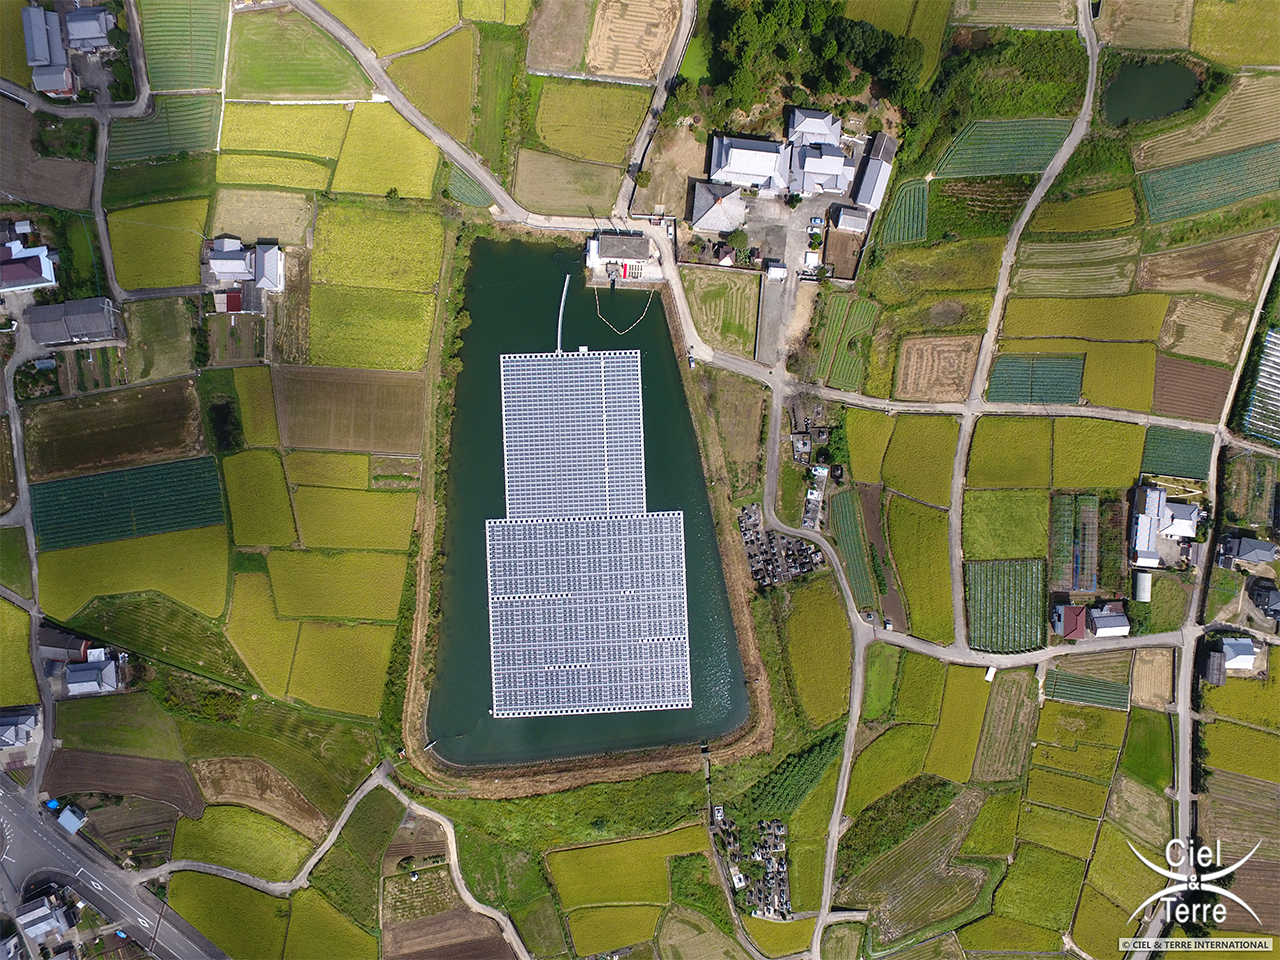 Ciel Et Tere latest project in Isawa, Japan, 632 kWp